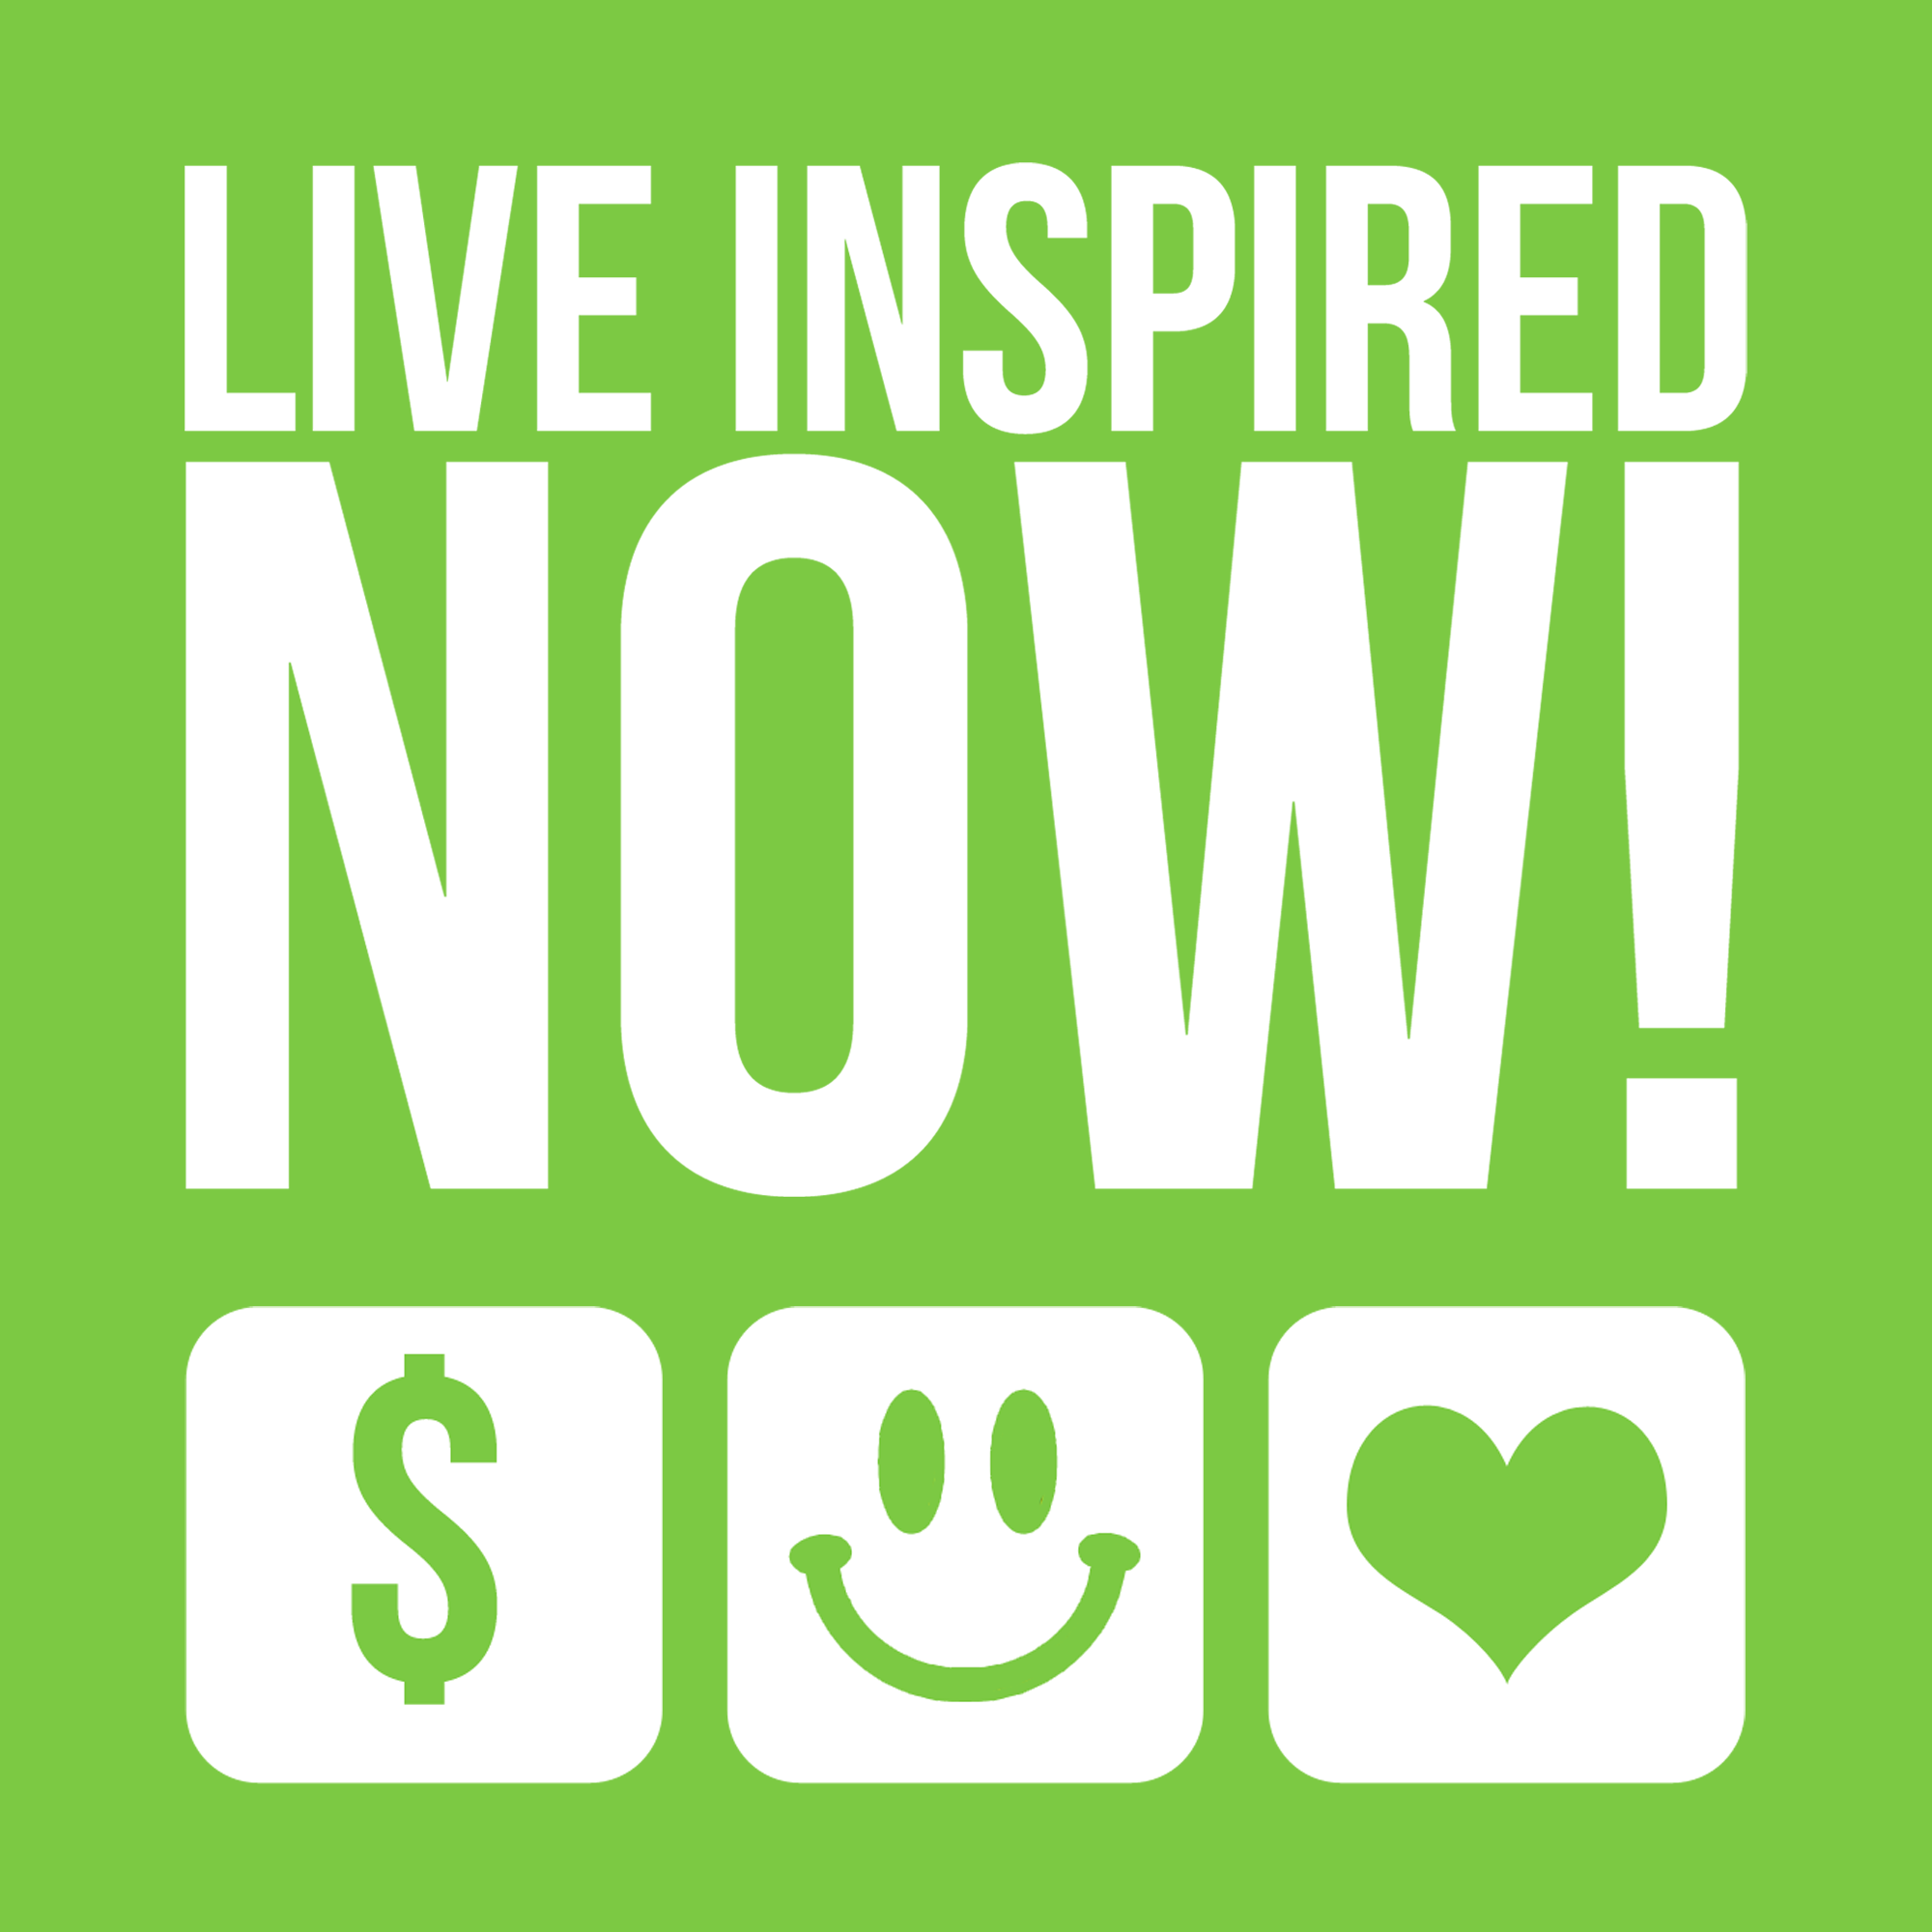 Live Inspired Now!